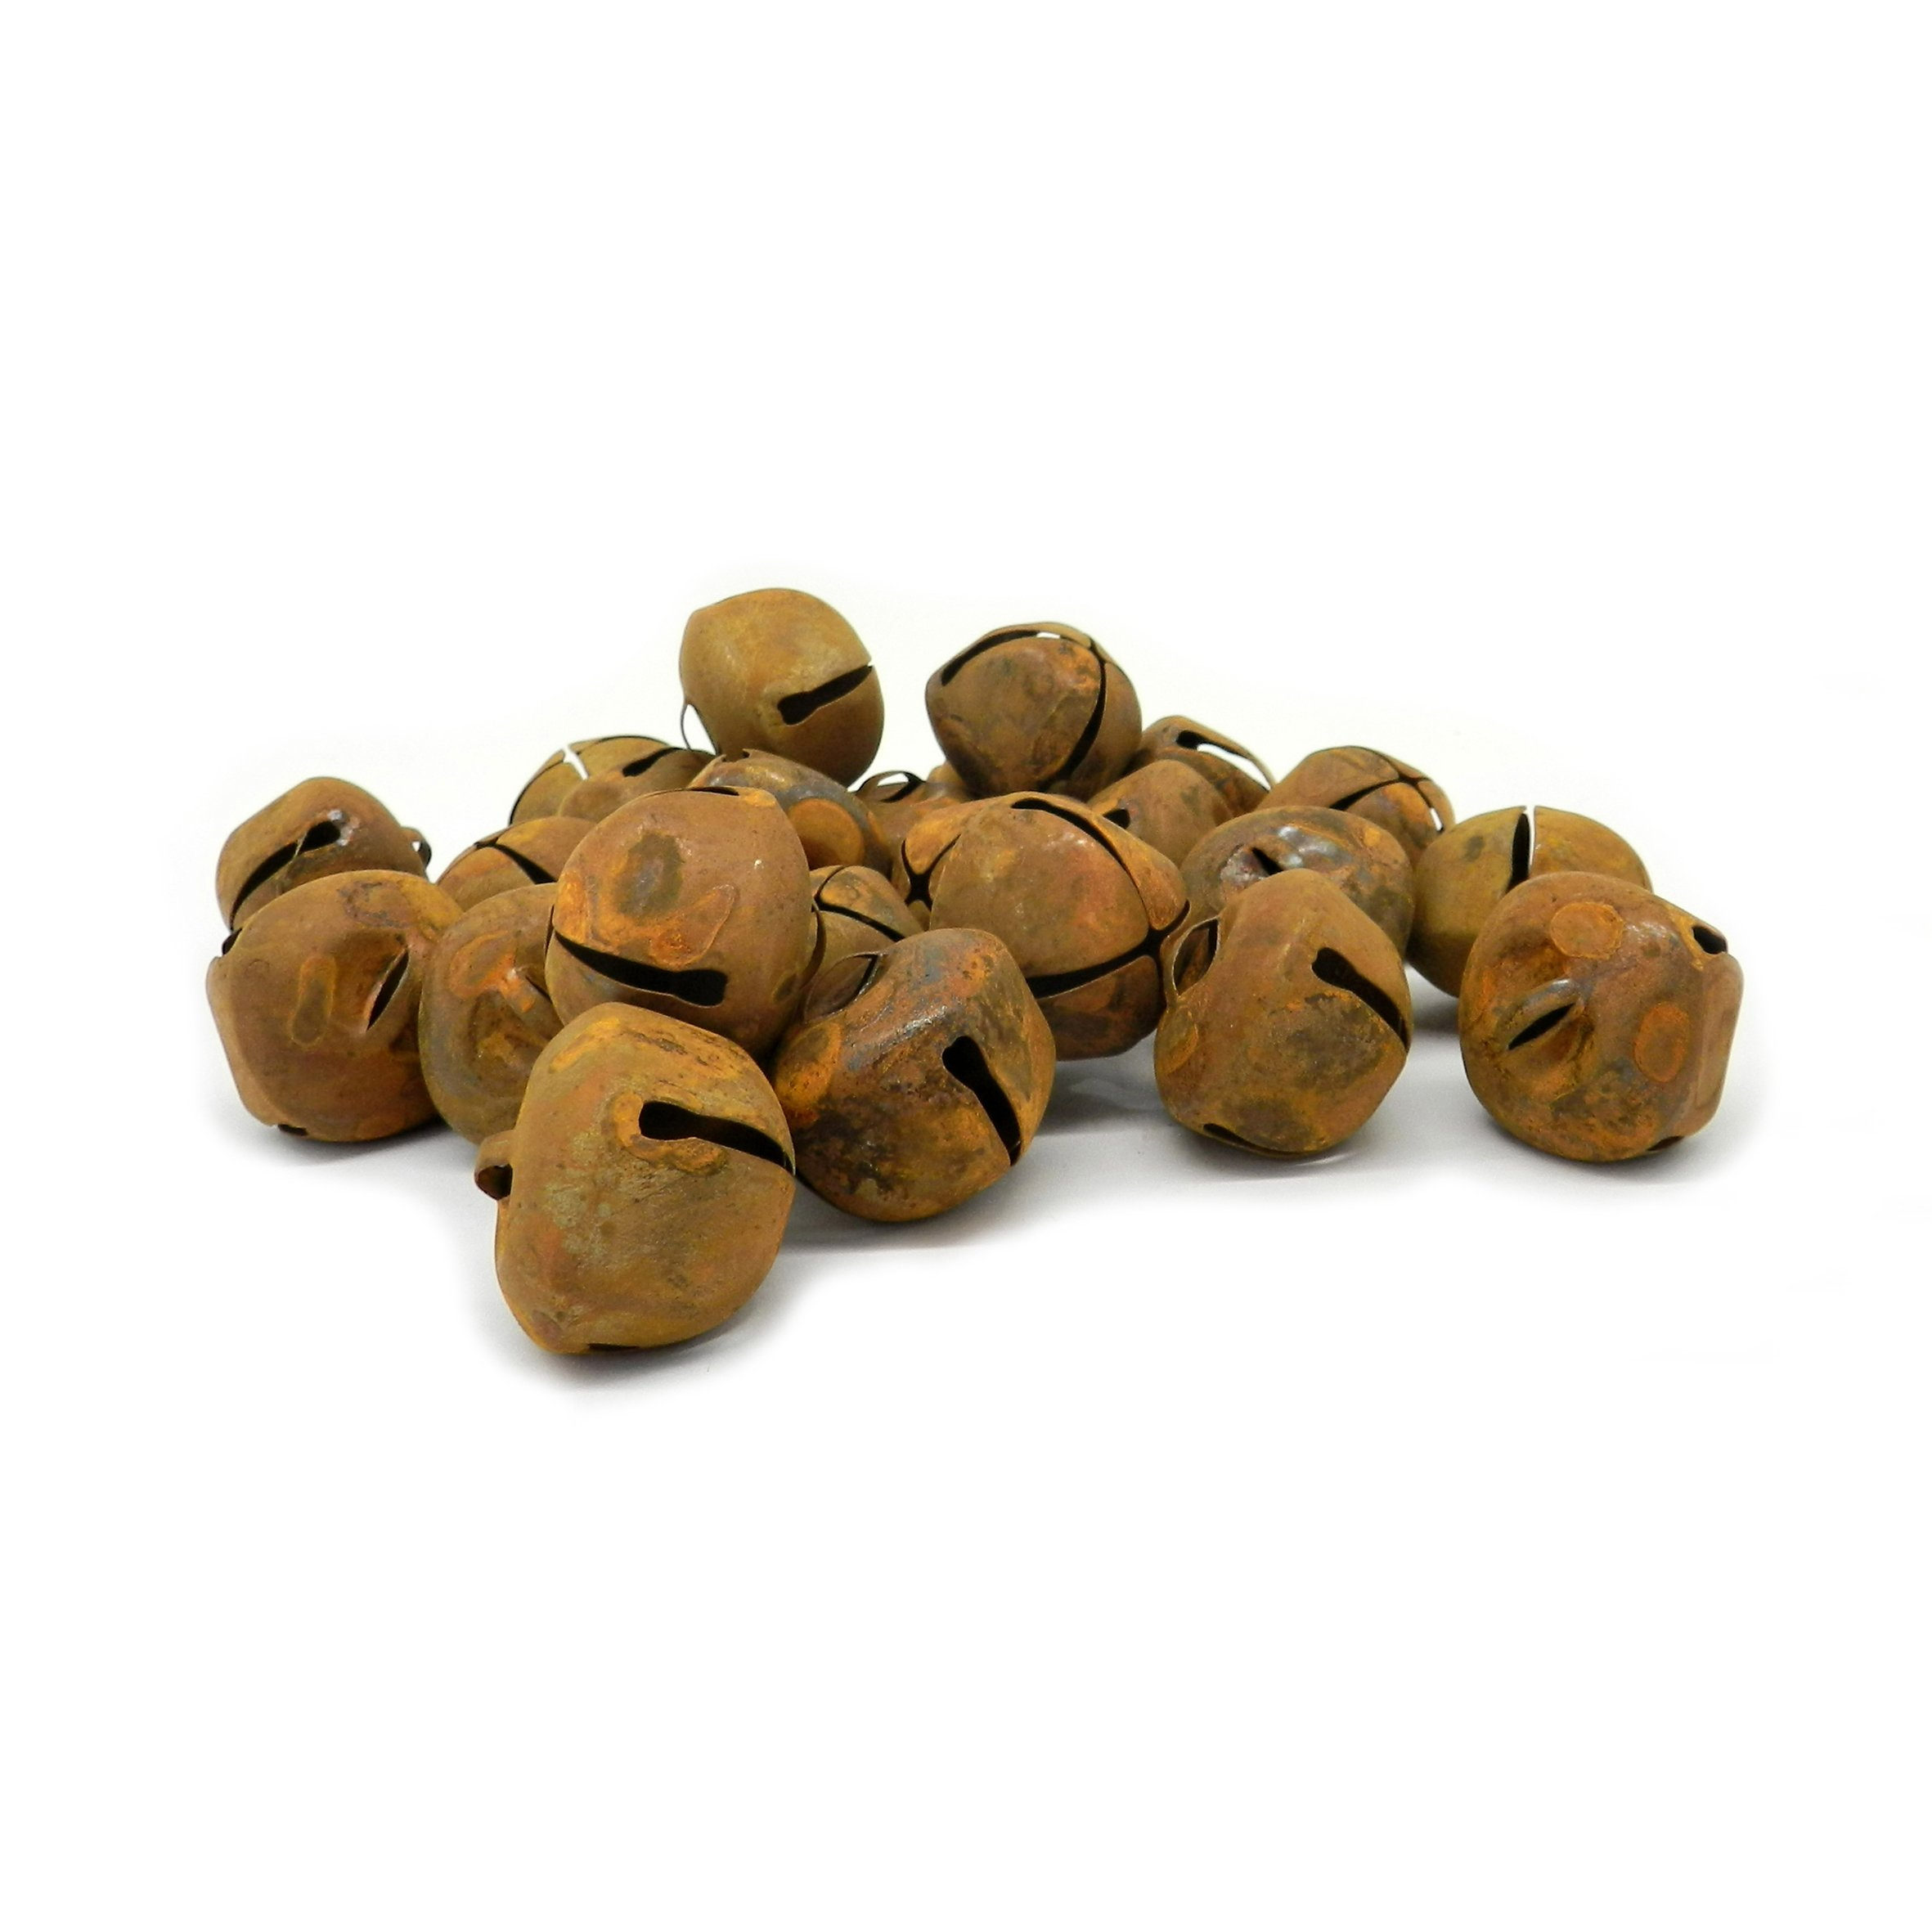 CVHOMEDECO.. Country Primitive Craft Rusty Tin Jingle Bells for Crafting, Designing and Decorating, 1-3/16'', Packages of 24.